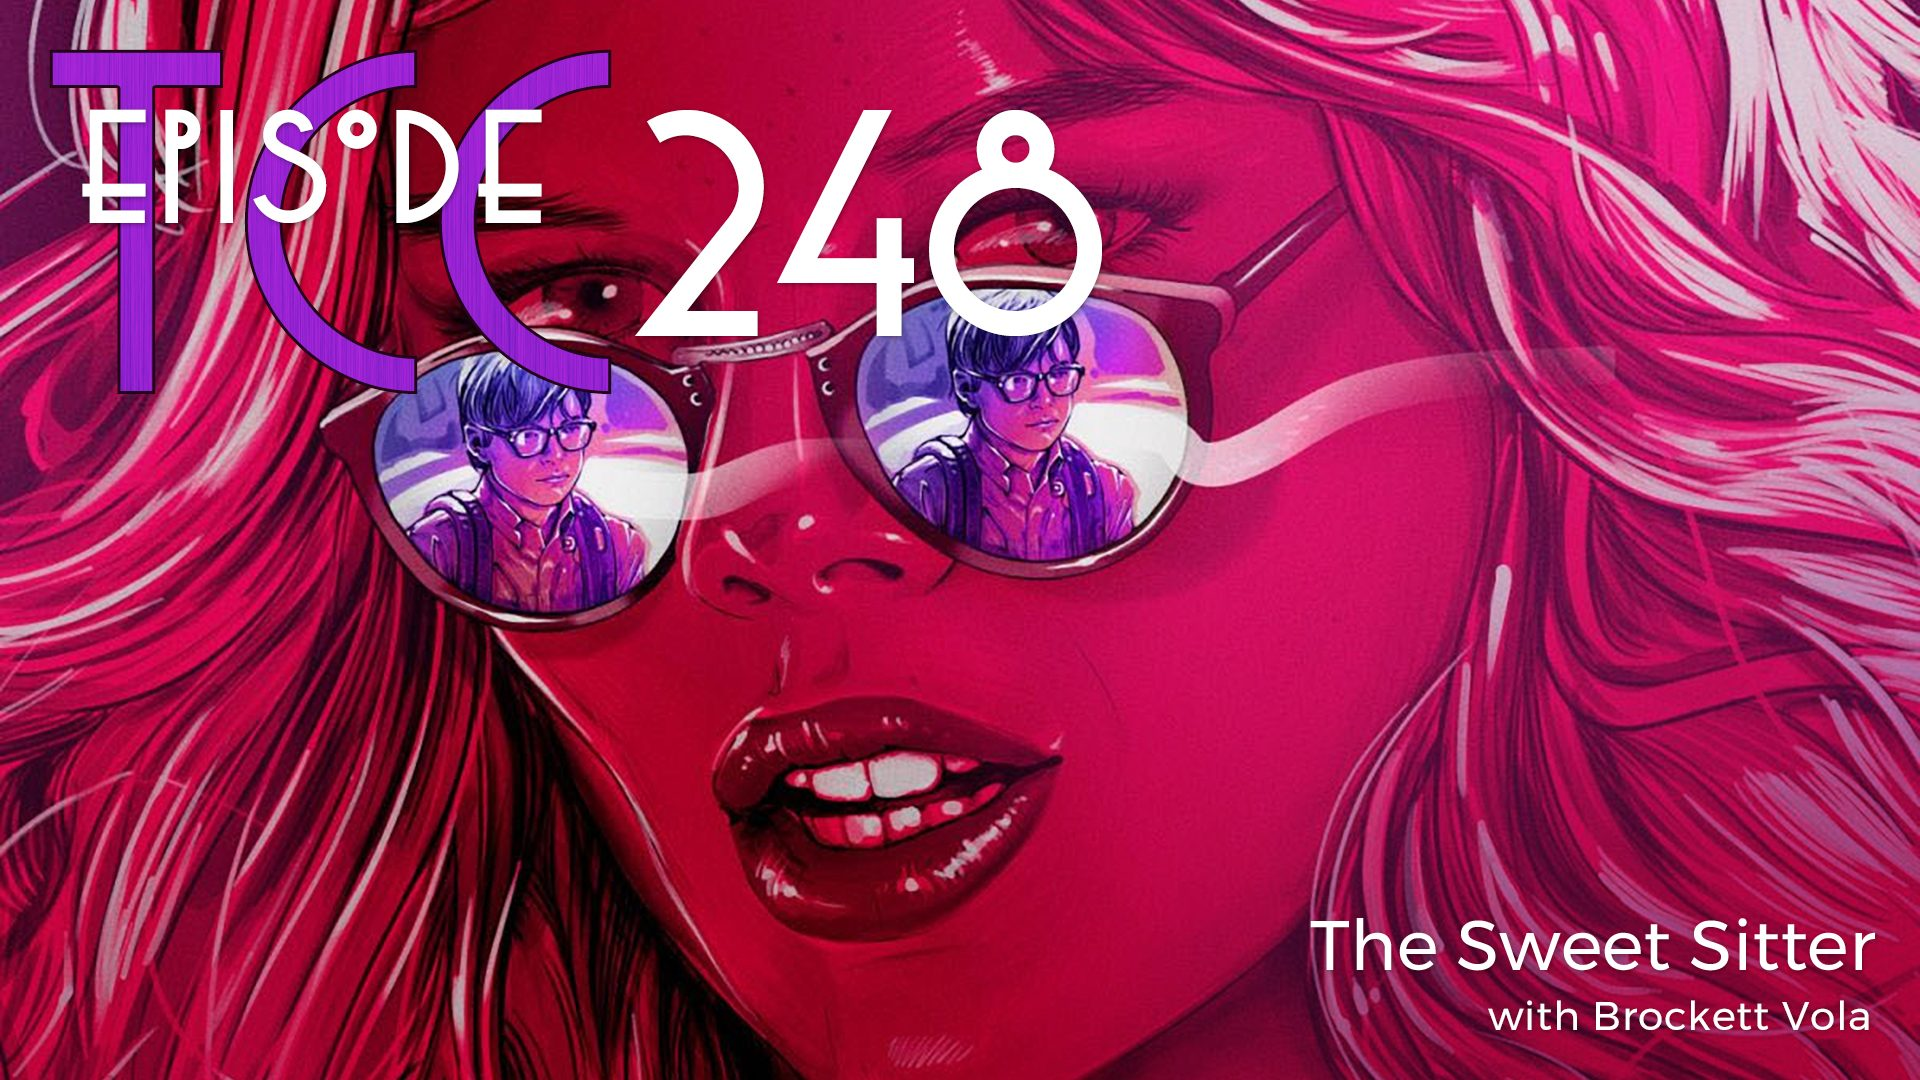 The Citadel Cafe 248: The Sweet Sitter